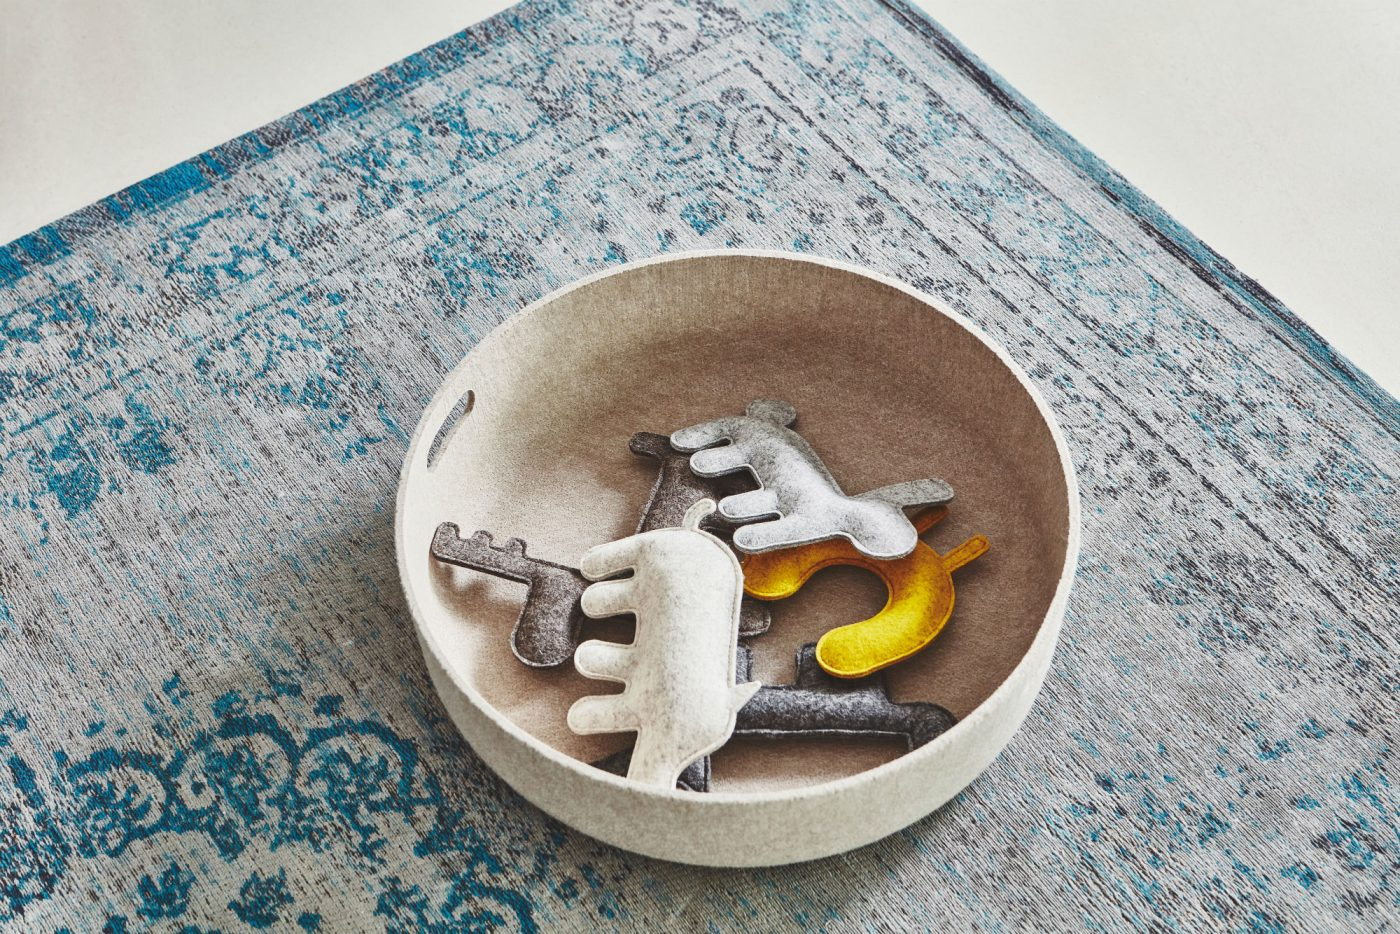 9 Chic Ways to Keep Your Dog's Stuff Neat and Organized